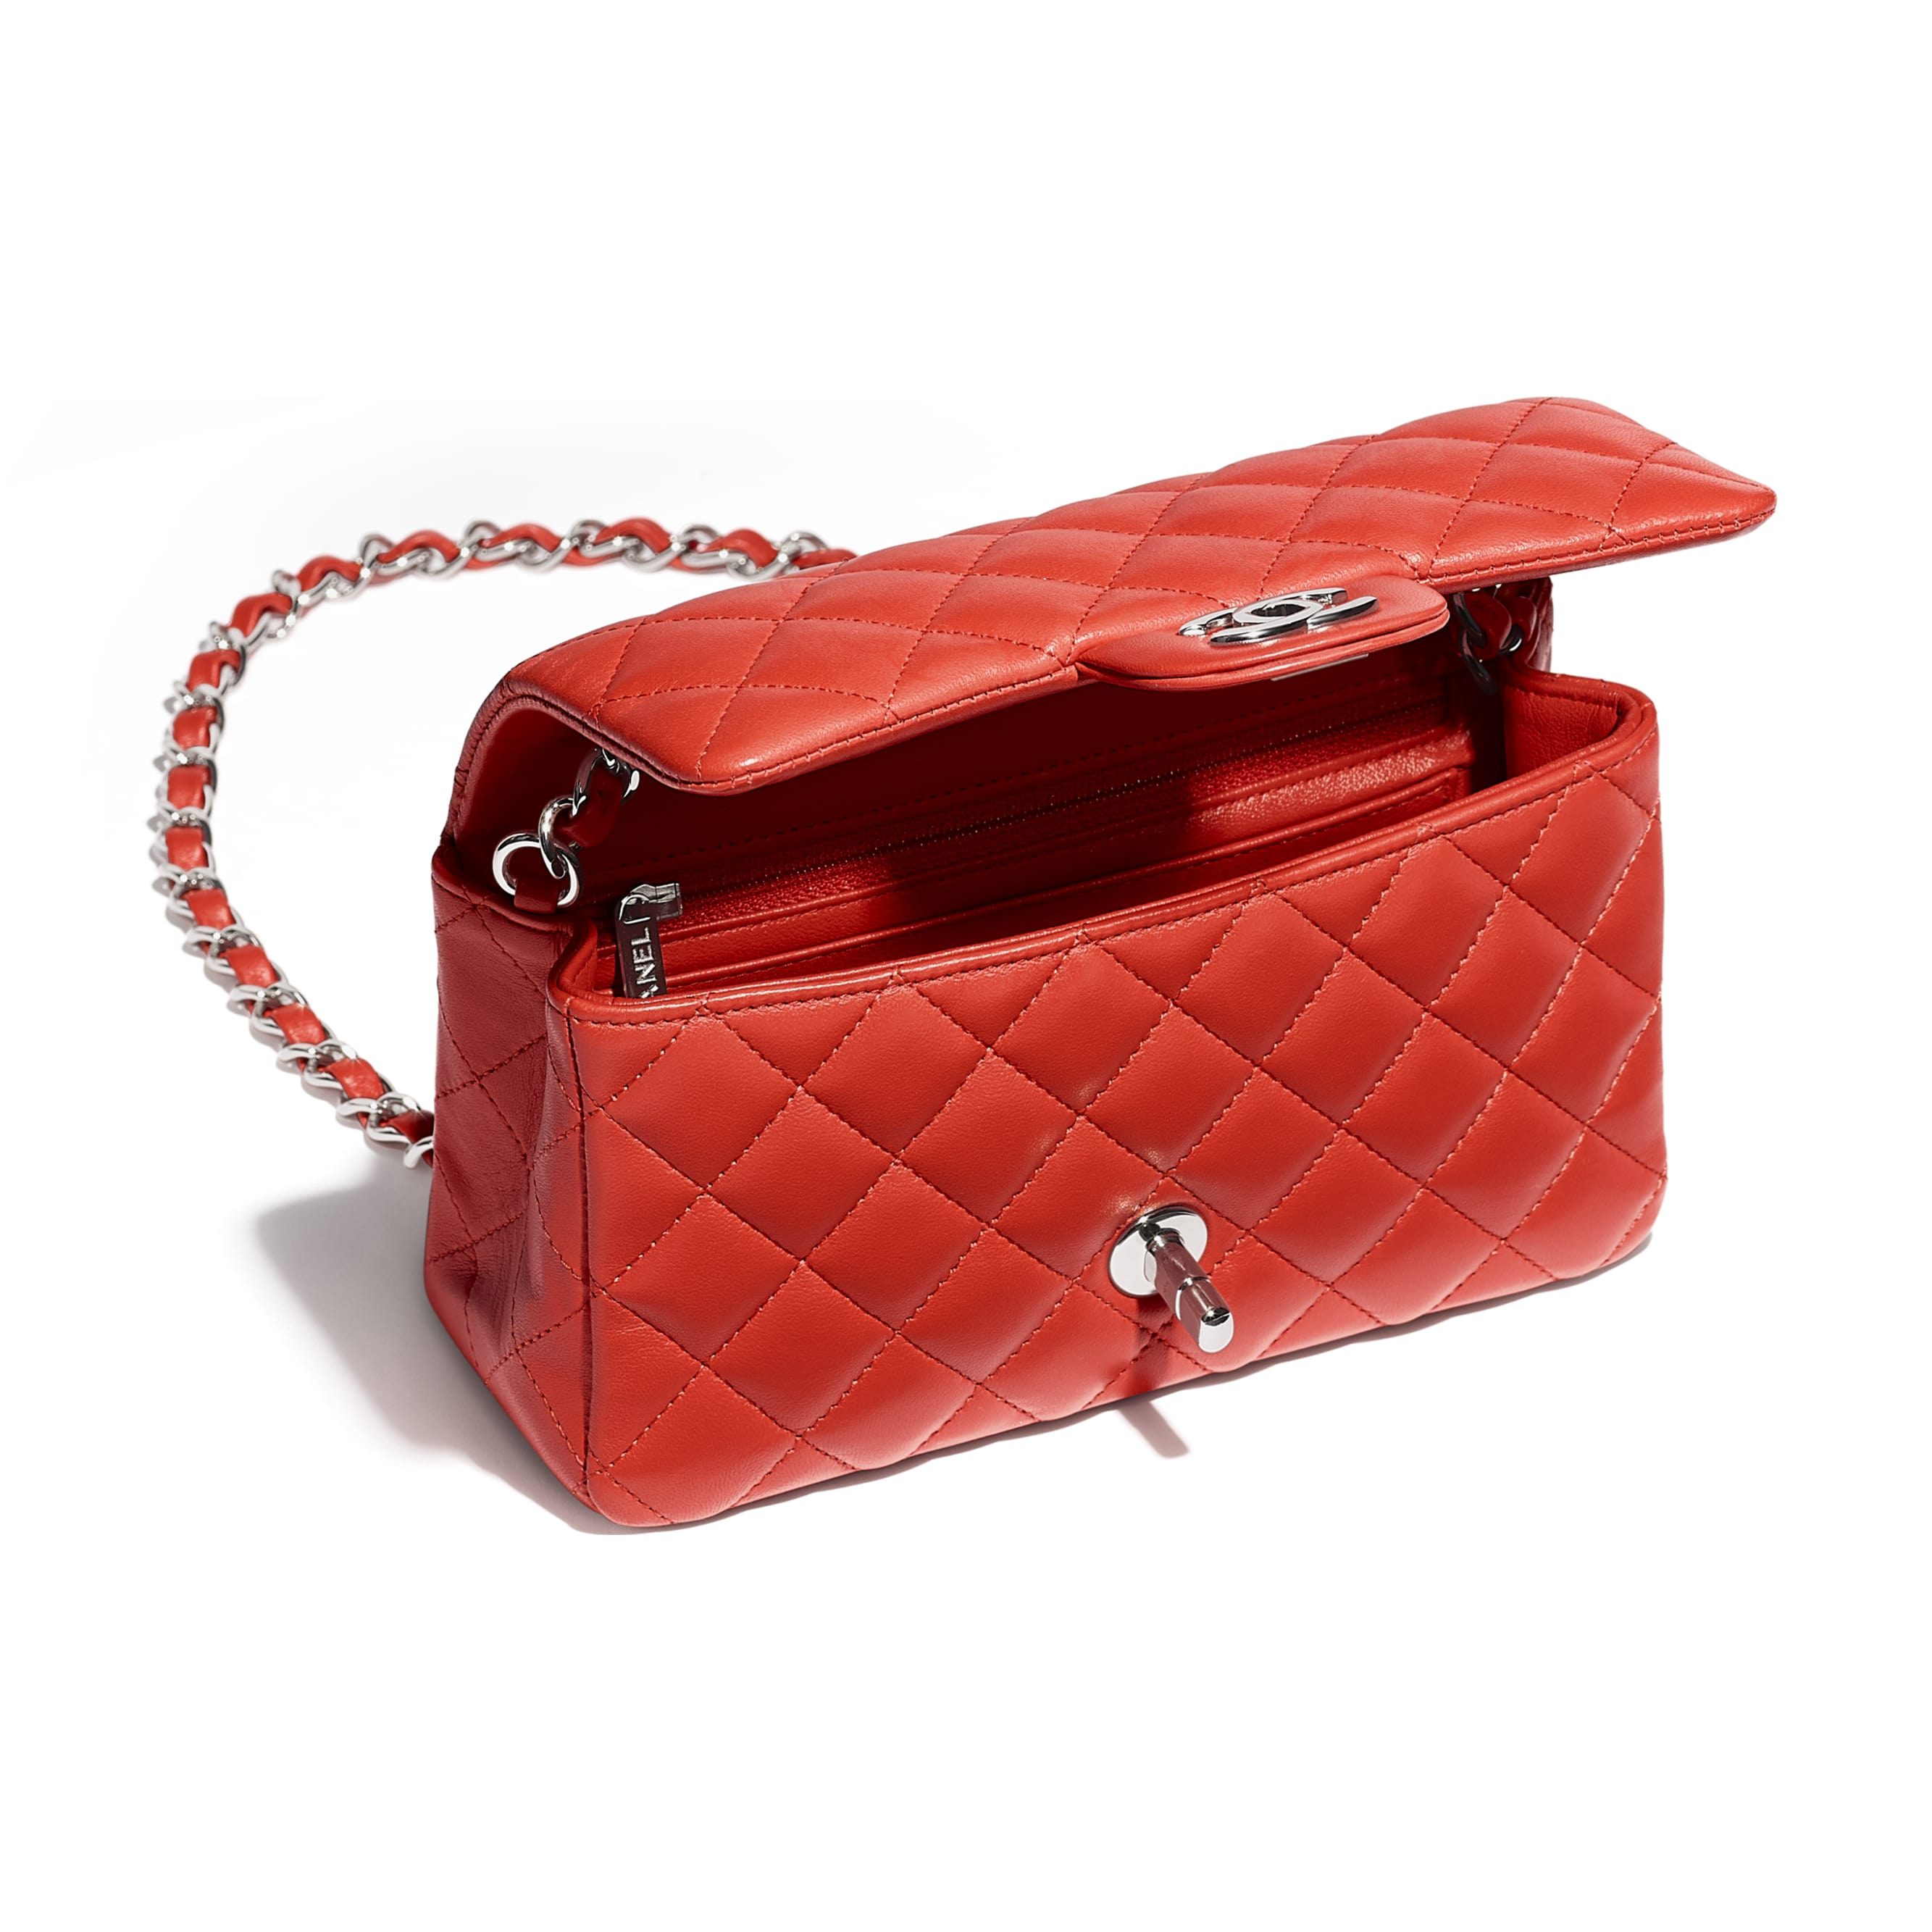 23496cd710a2 Small Flap Bag With Top Handle $5,600. Material : Lambskin & Gold-Tone Metal  Dimensions : 6.6 x 9.8 x 4.7 in ( cm )